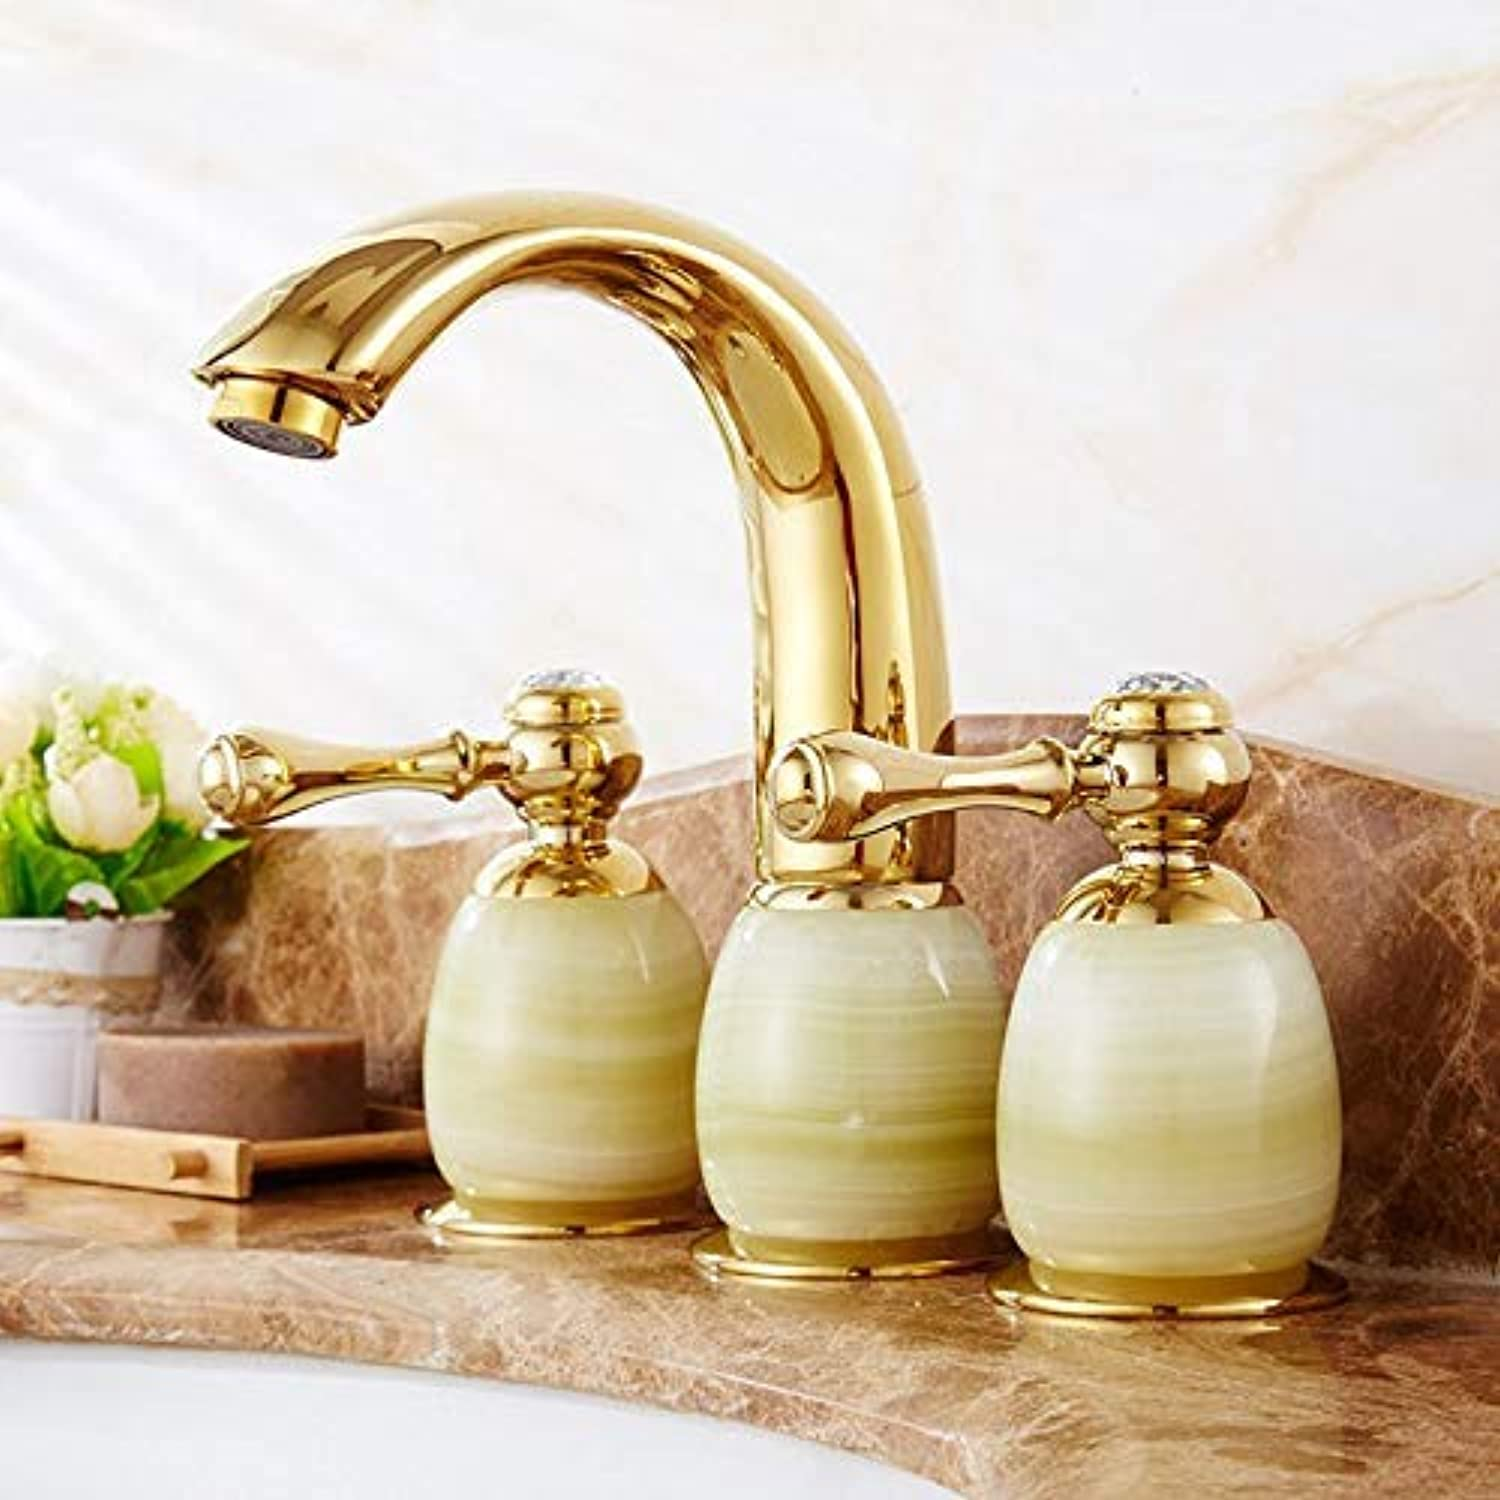 Oudan Taps Faucet Basin Faucet gold Brass Natural Jade Hot And Cold Three-Hole Basin Antique Bathroom Cabinet Faucet L (color   -, Size   -)